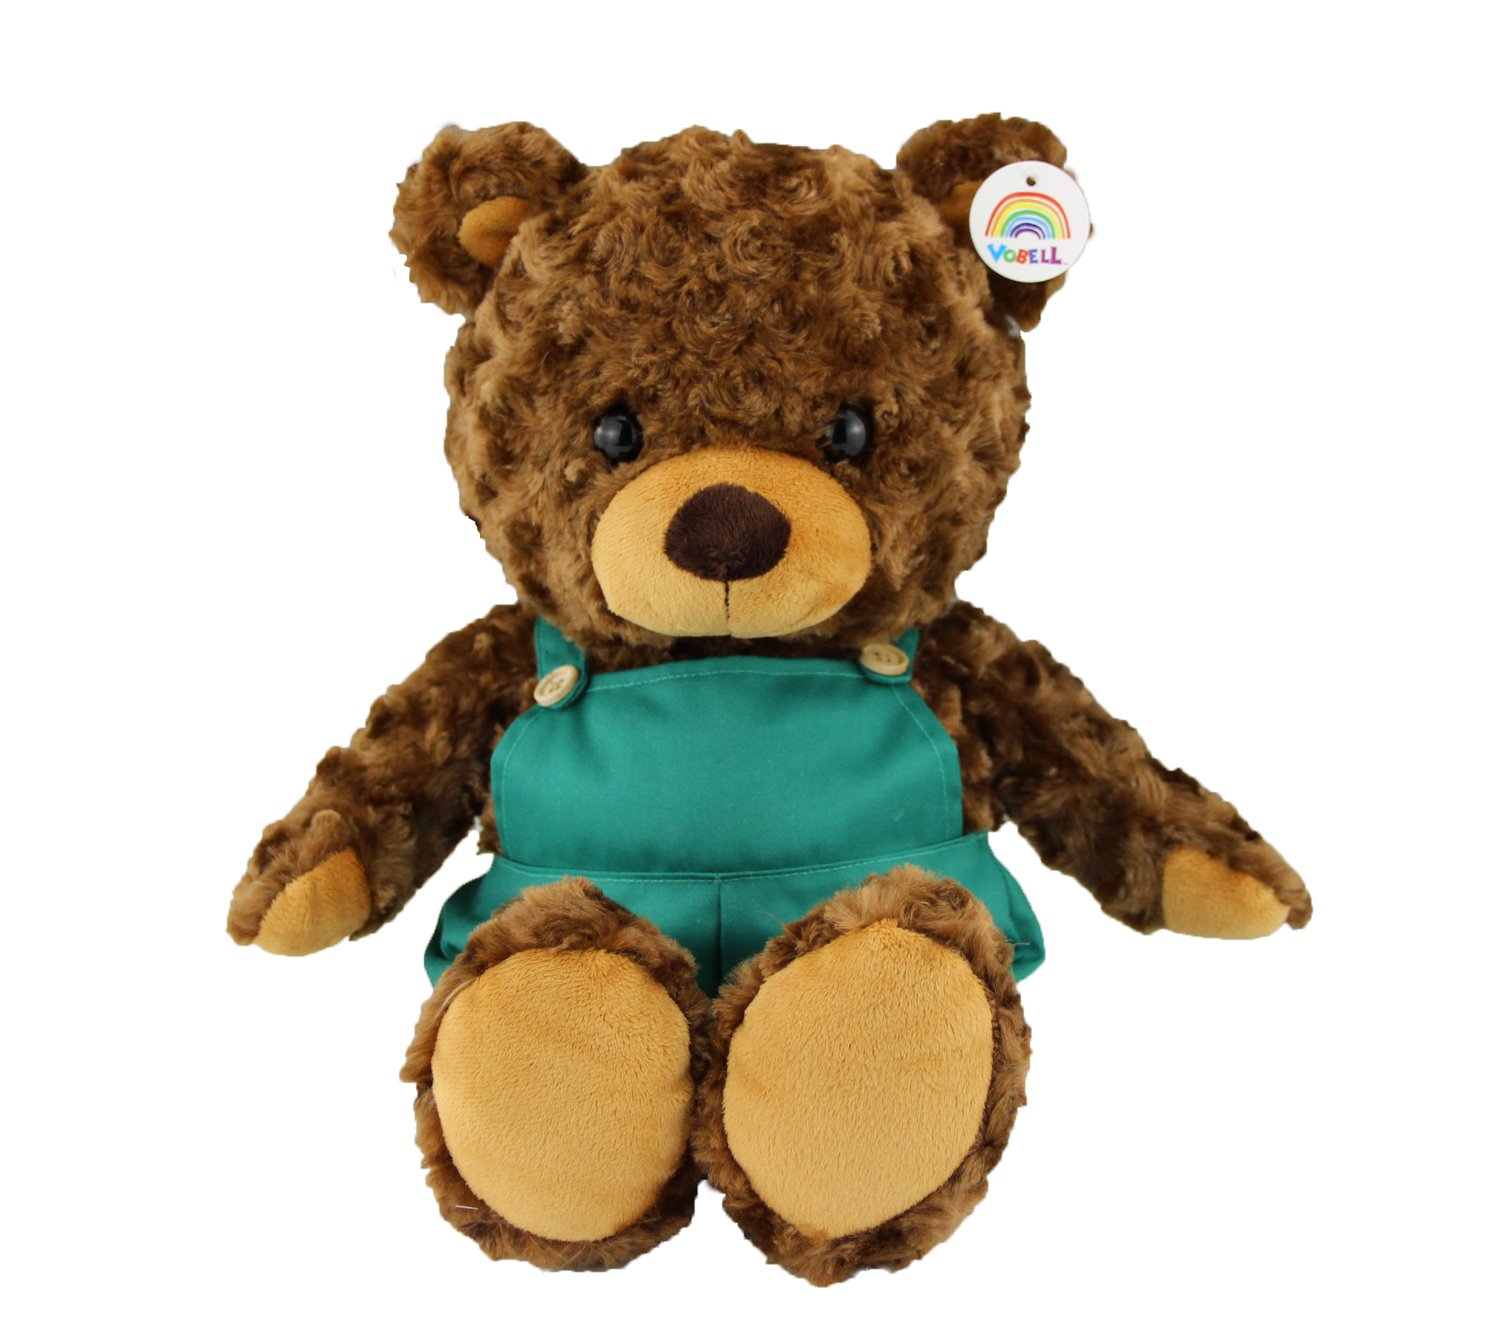 Vobell Overalls Teddy Bear Plush Stuffed Animal Toy with Cute Pans 11-inch